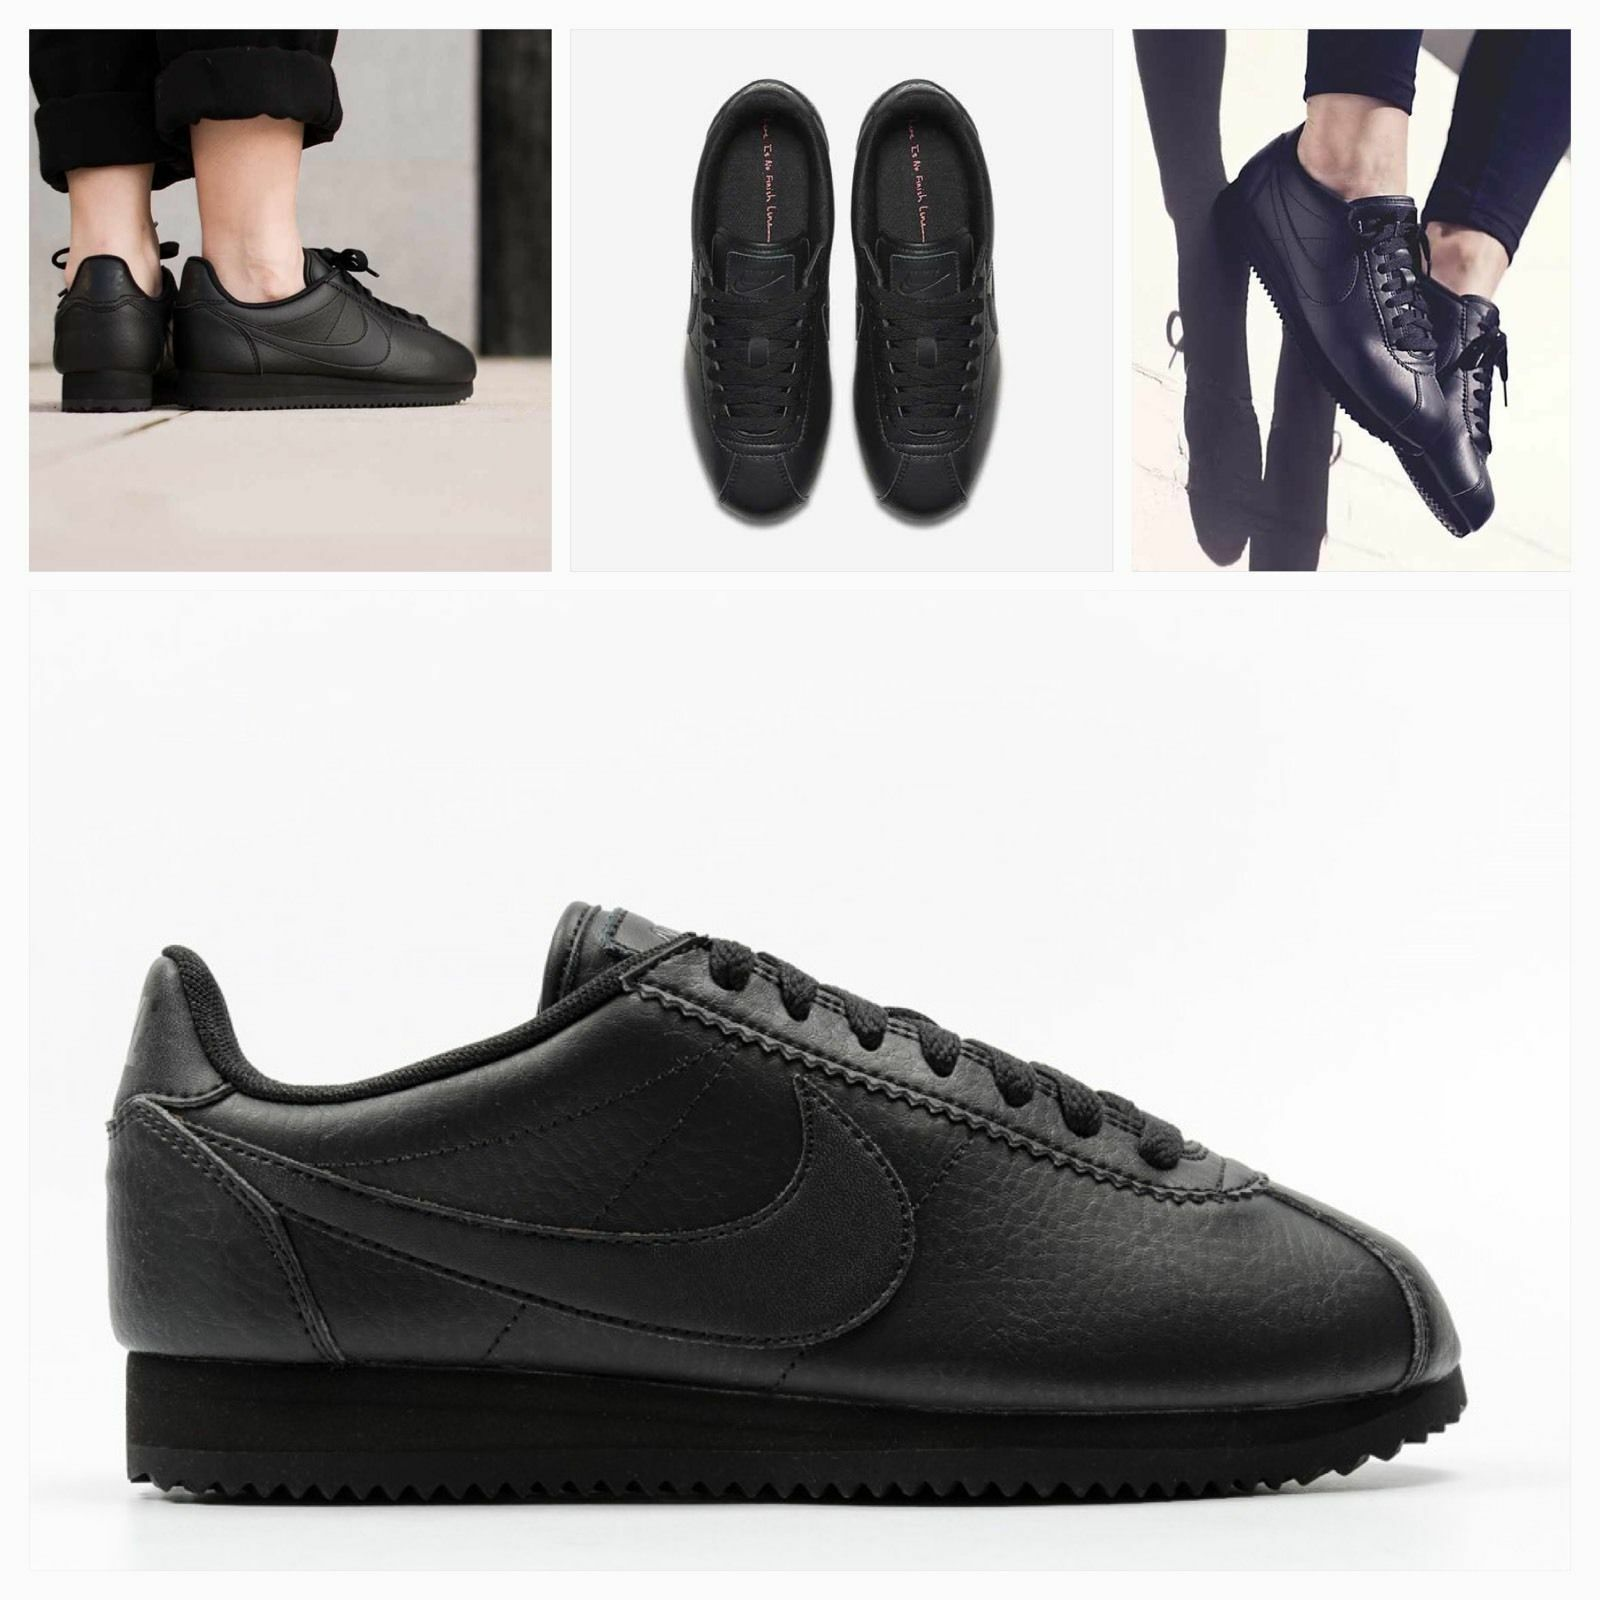 Damenschuhe CORTEZ  Herren NIKE CLASSIC CORTEZ Damenschuhe STR LEATHER SIZE 5 EUR 38.5 (884922 001) BLACK 35bad9